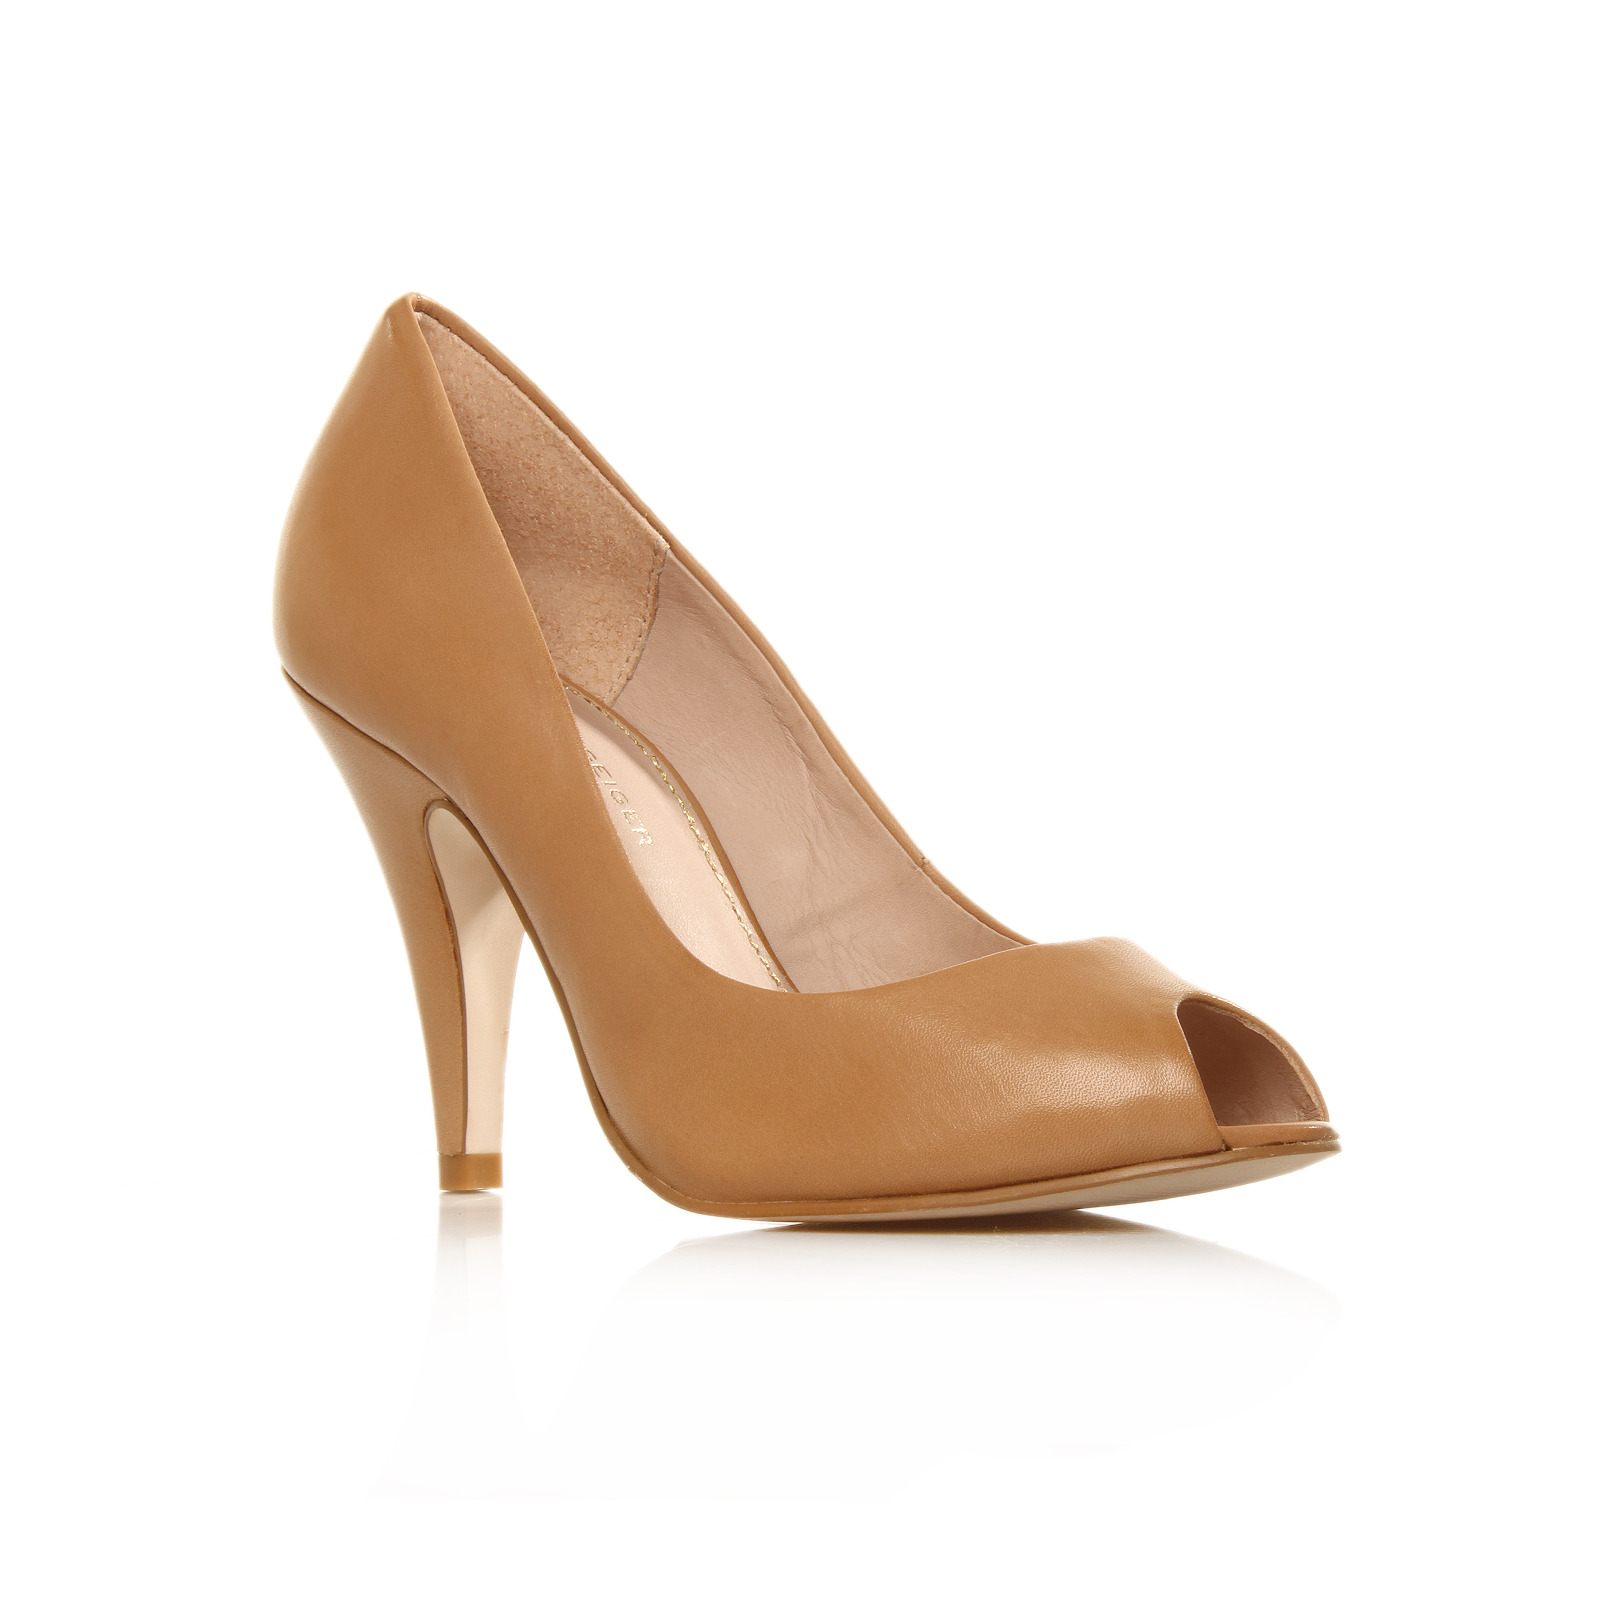 Audrina - predominant colour: camel; material: leather; heel height: high; heel: stiletto; toe: open toe/peeptoe; style: courts